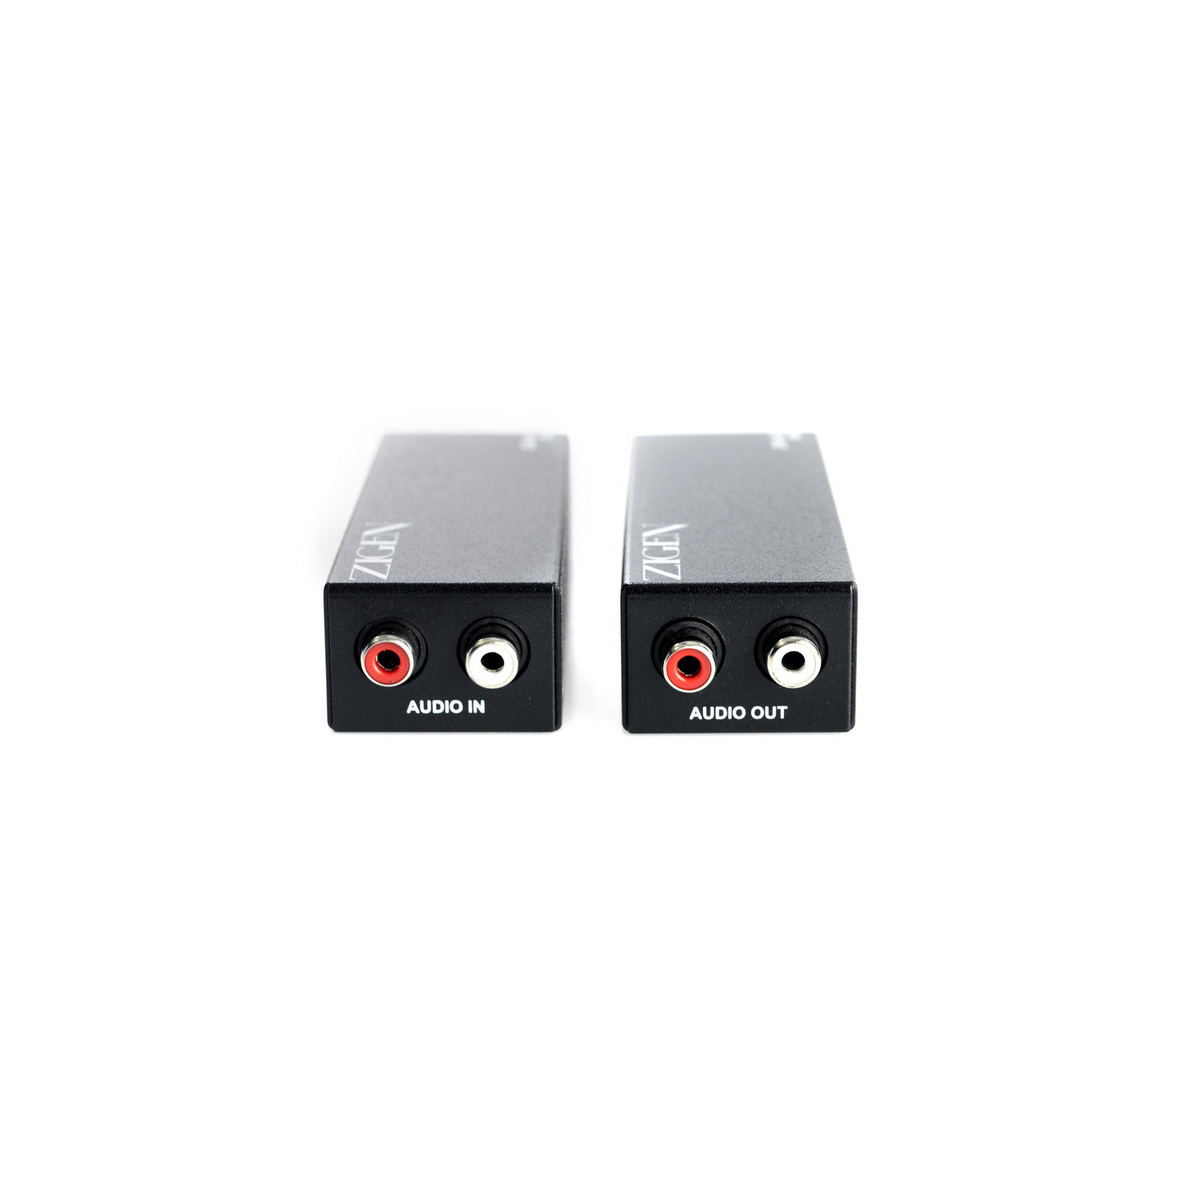 Zigen LINE LEV AUDIO EXT 300M (SET) ZIG-AX